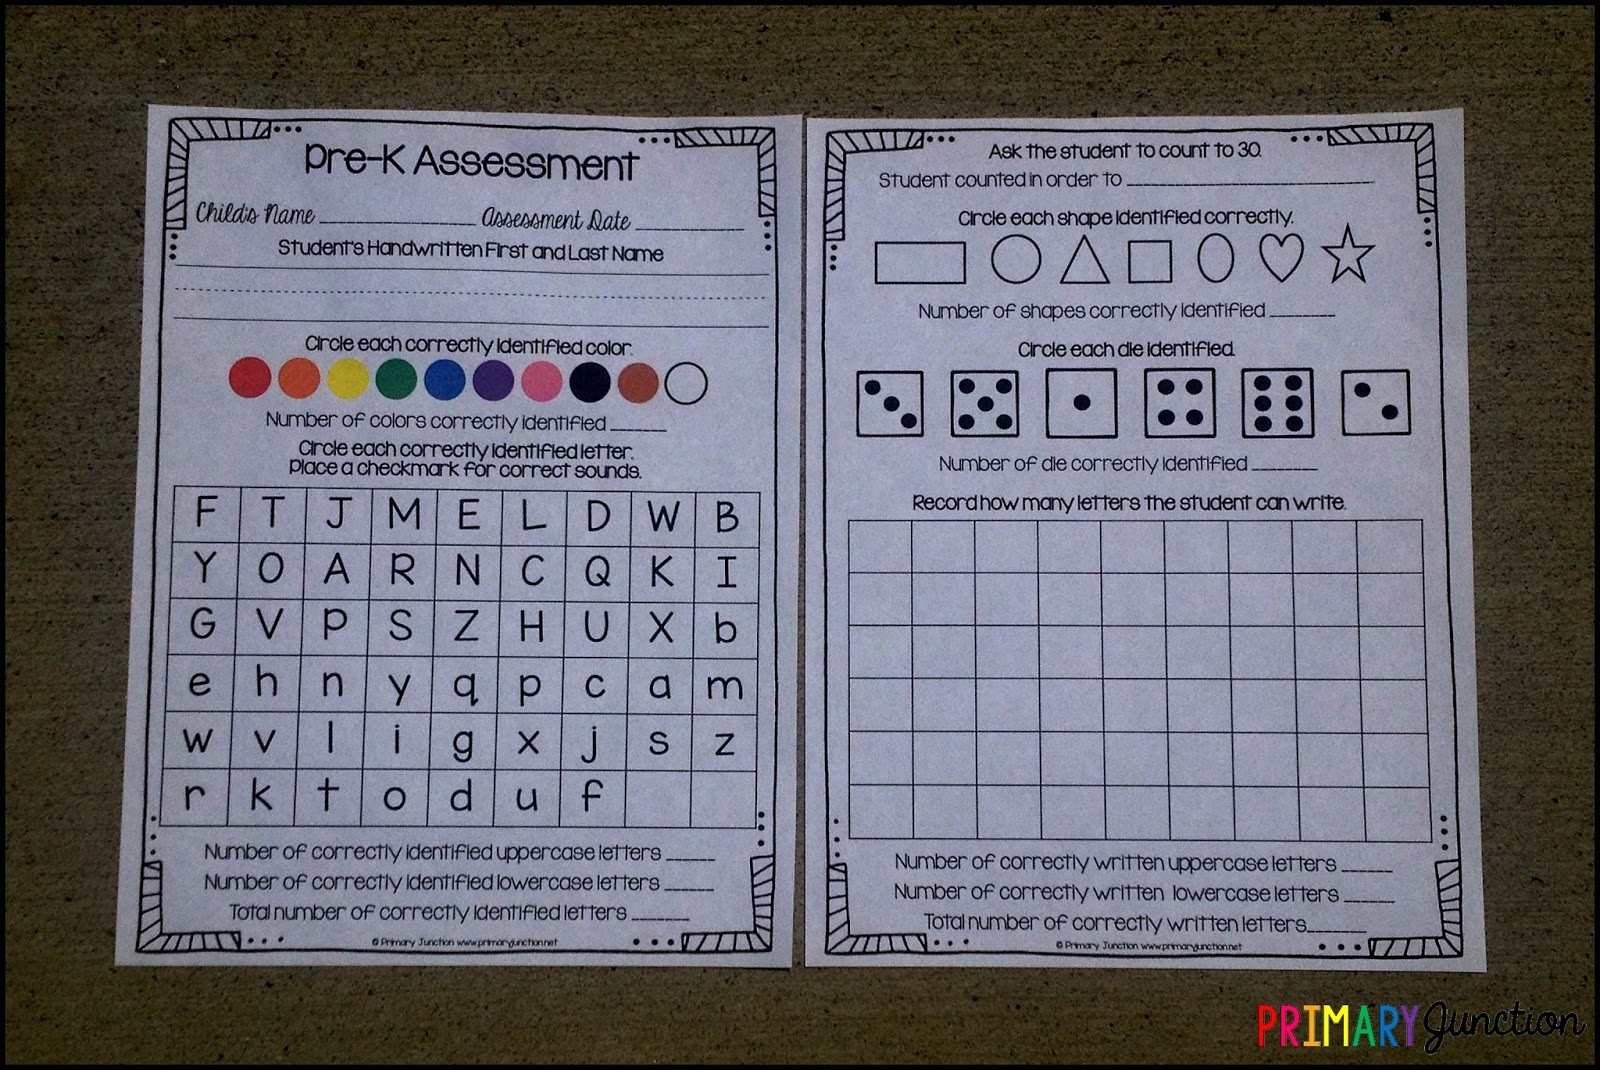 Primary Junction: Free Pre-K Assessment - Free Printable Pre K Assessment Forms